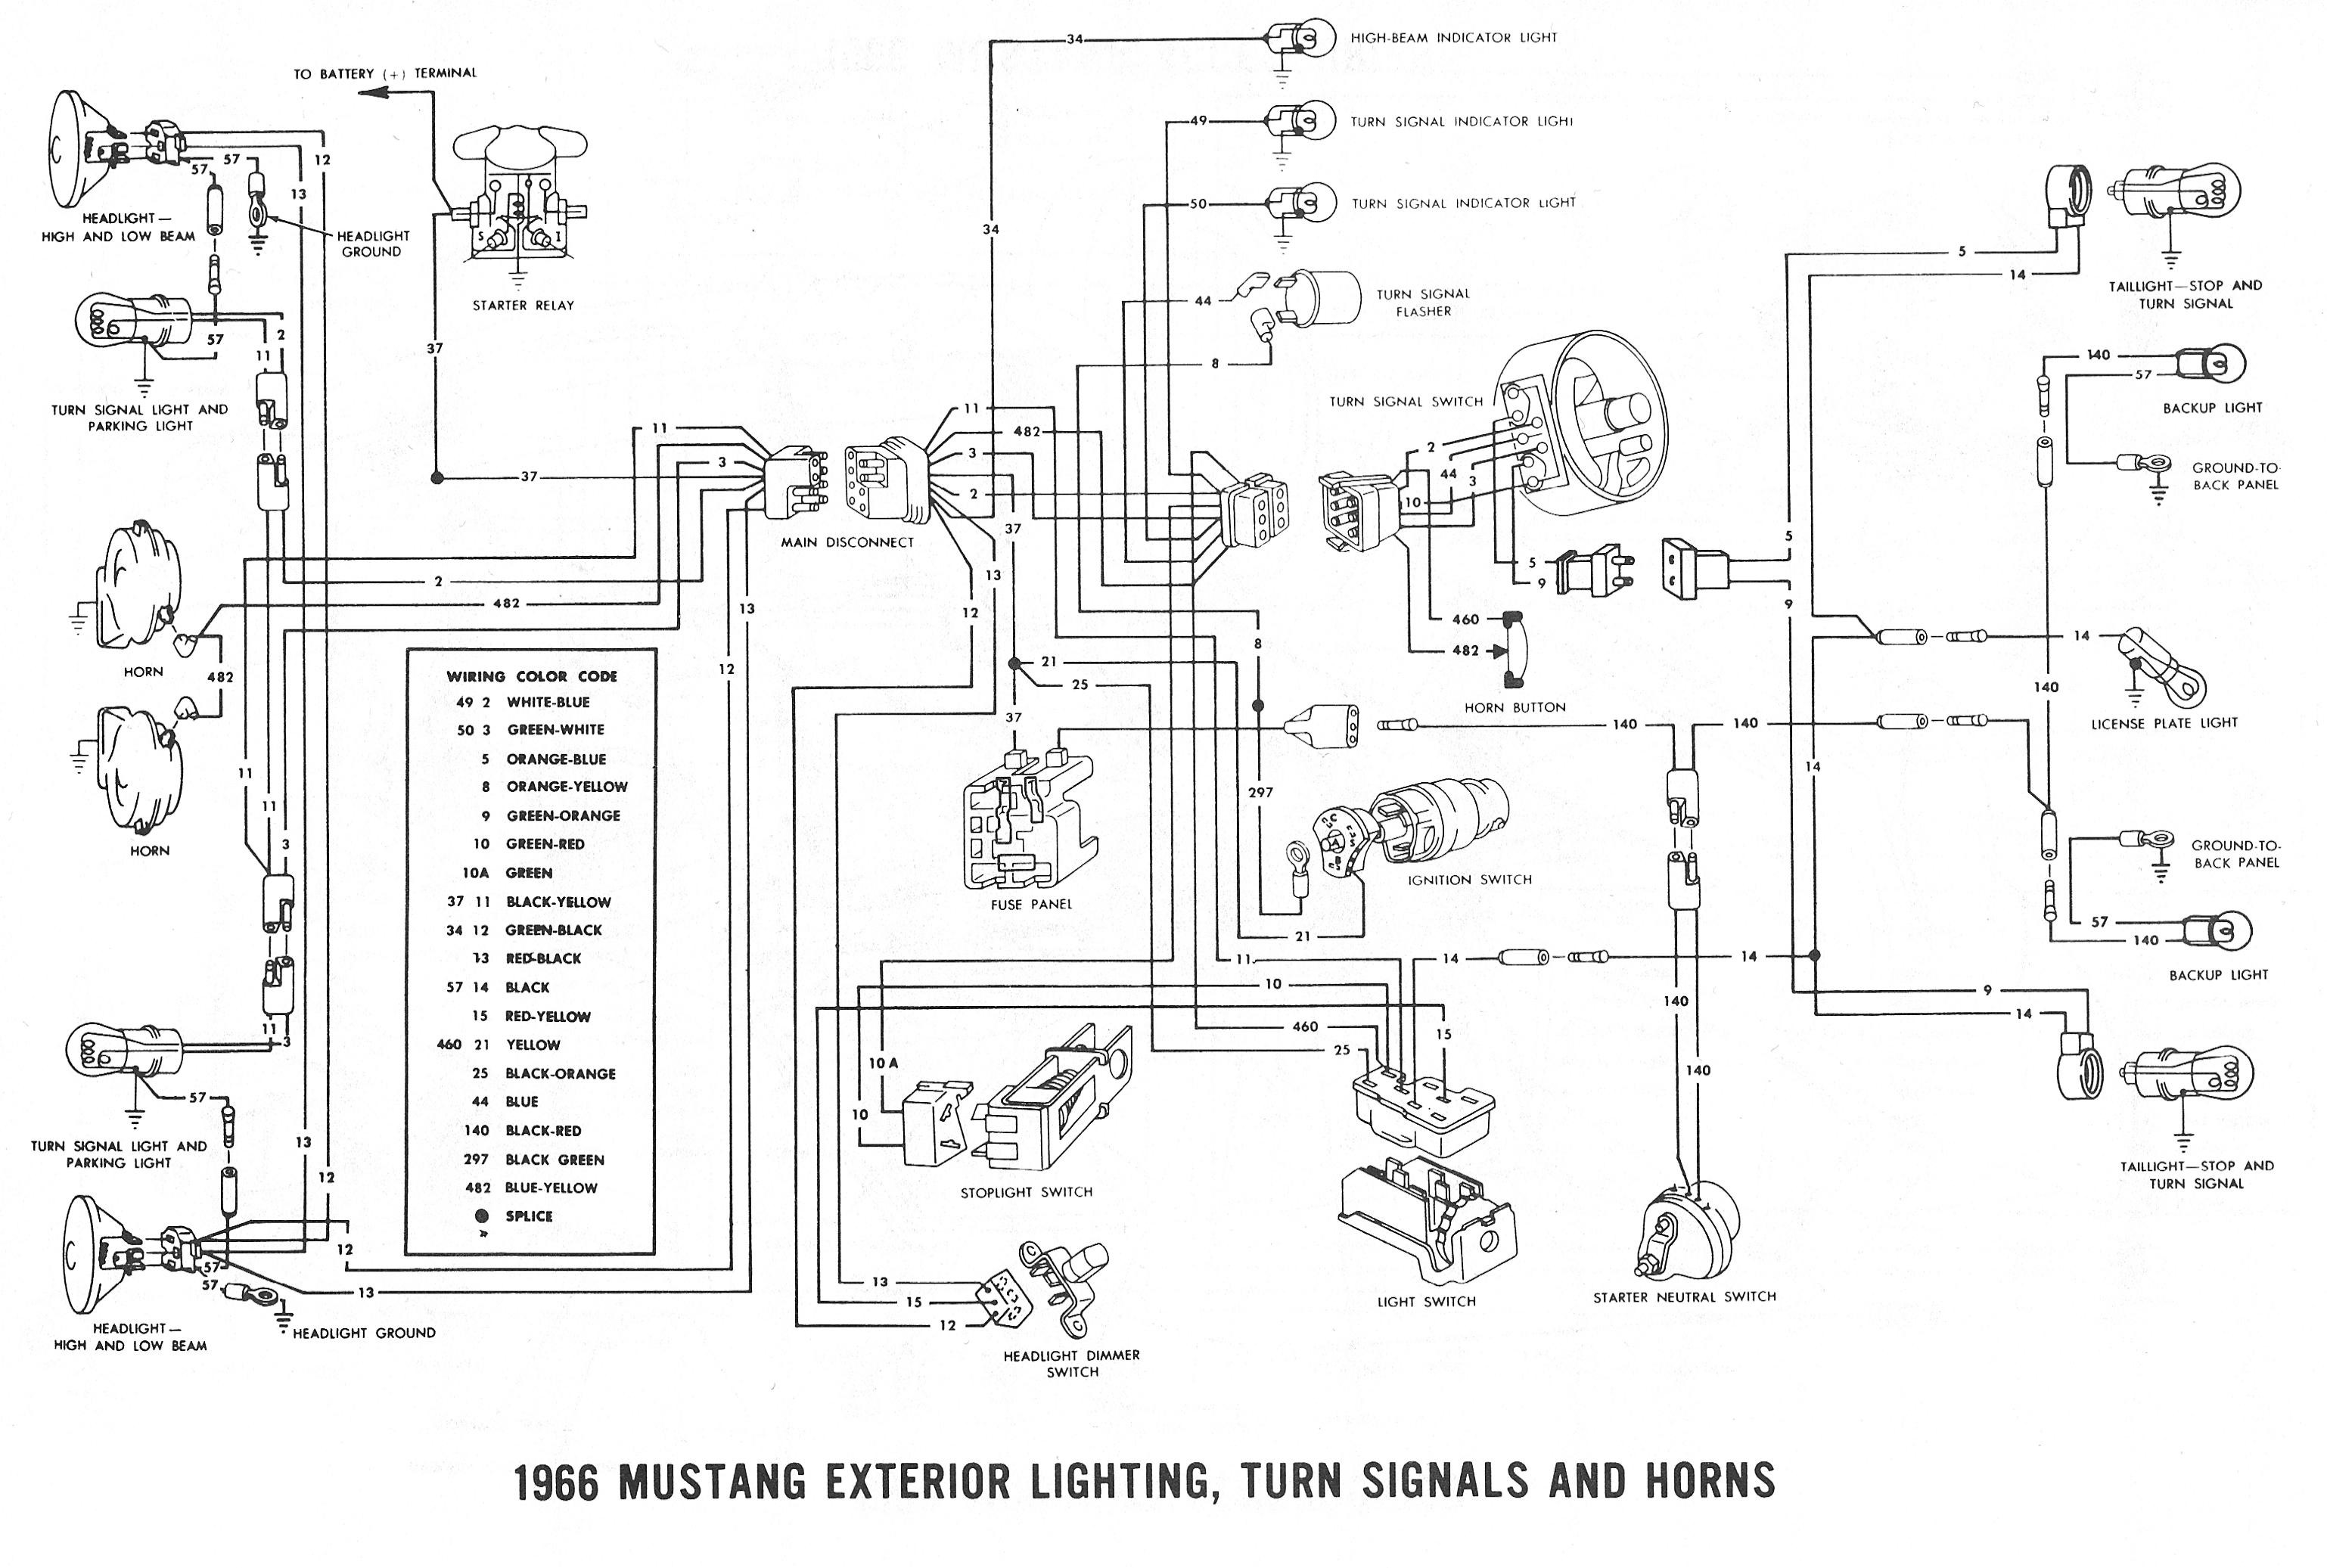 wiring diagram for 1966 ford mustang wiring diagram perfomance  66 mustang turn signal wiring diagram #9